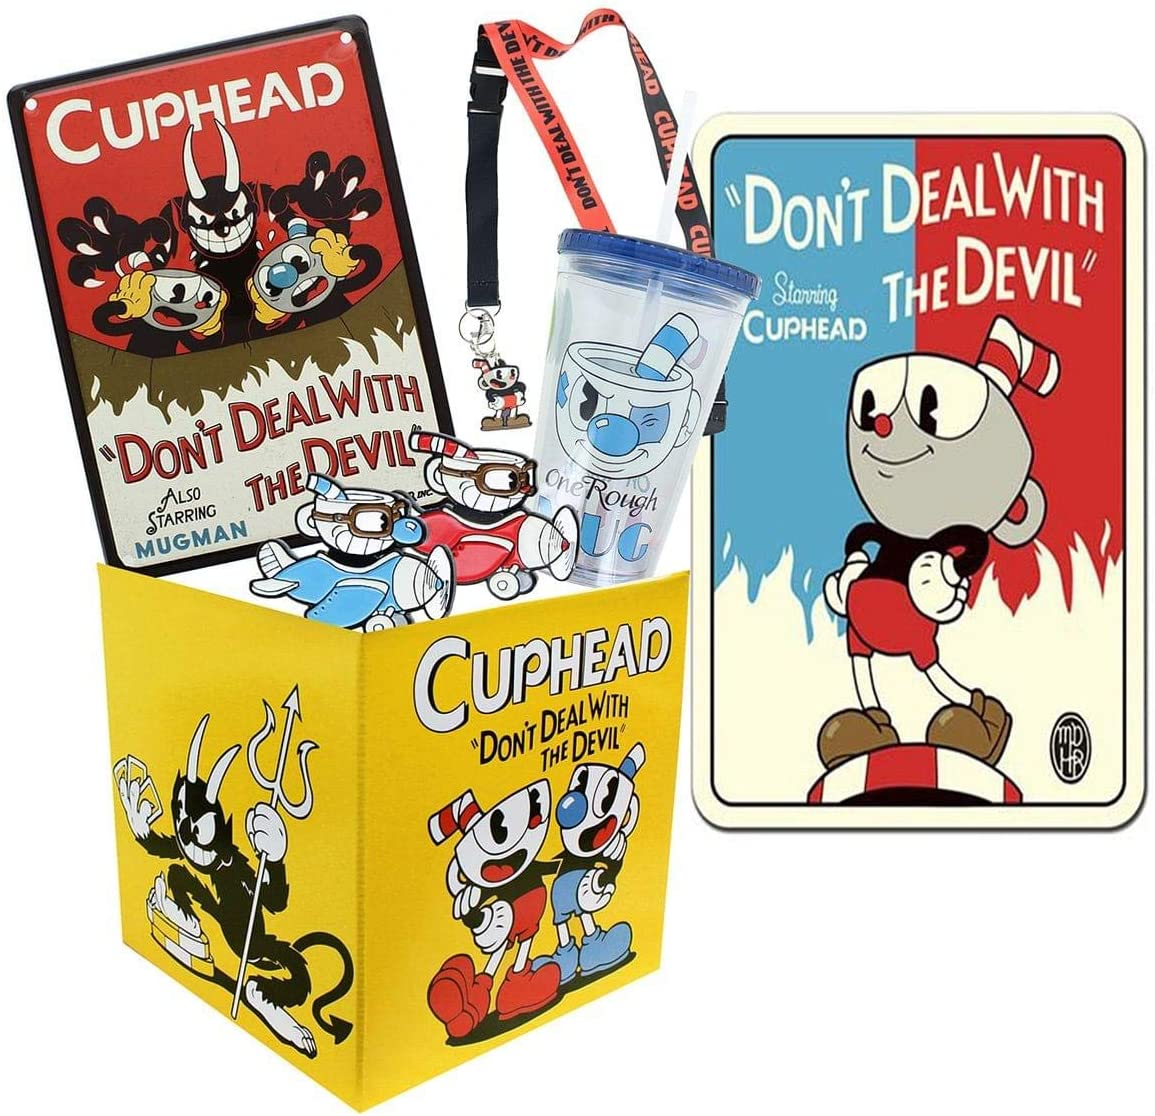 Toynk Cuphead Collectibles   Cuphead Looksee Collector's Box Version 2  Editor's Collection